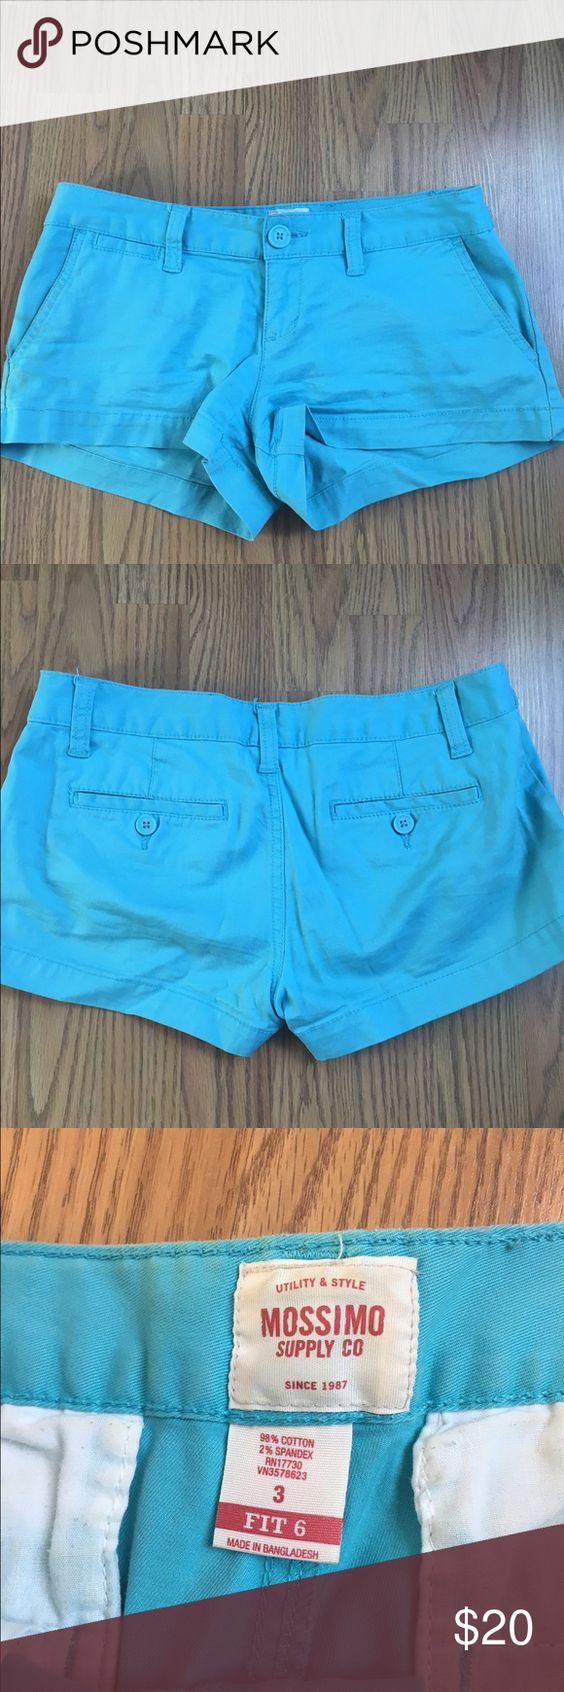 Turquoise shorts Turquoise shorts. Great color for spring and/or summer. Worn only a few times and in great condition! Size 3 Mossimo Supply Co Shorts Jean Shorts